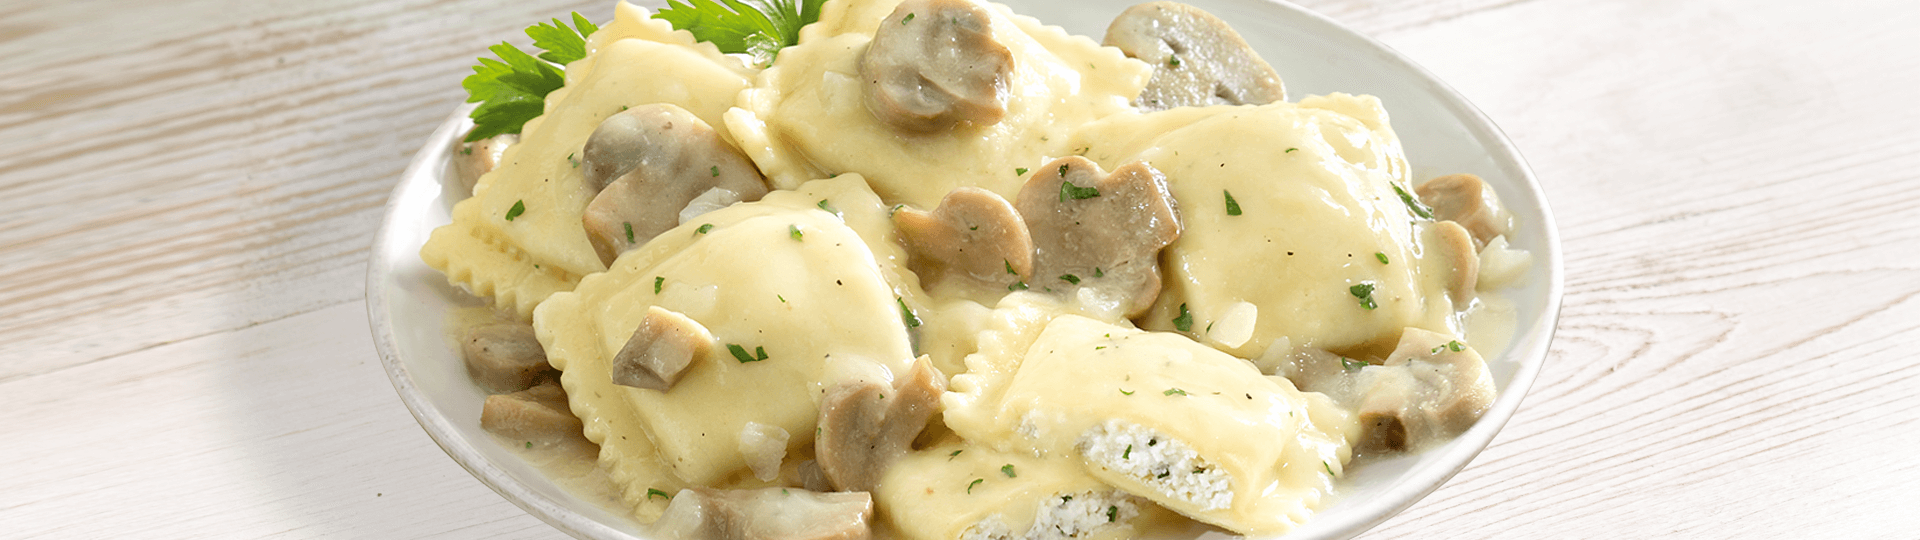 CHEESE RAVIOLI IN MUSHROOM CREAM